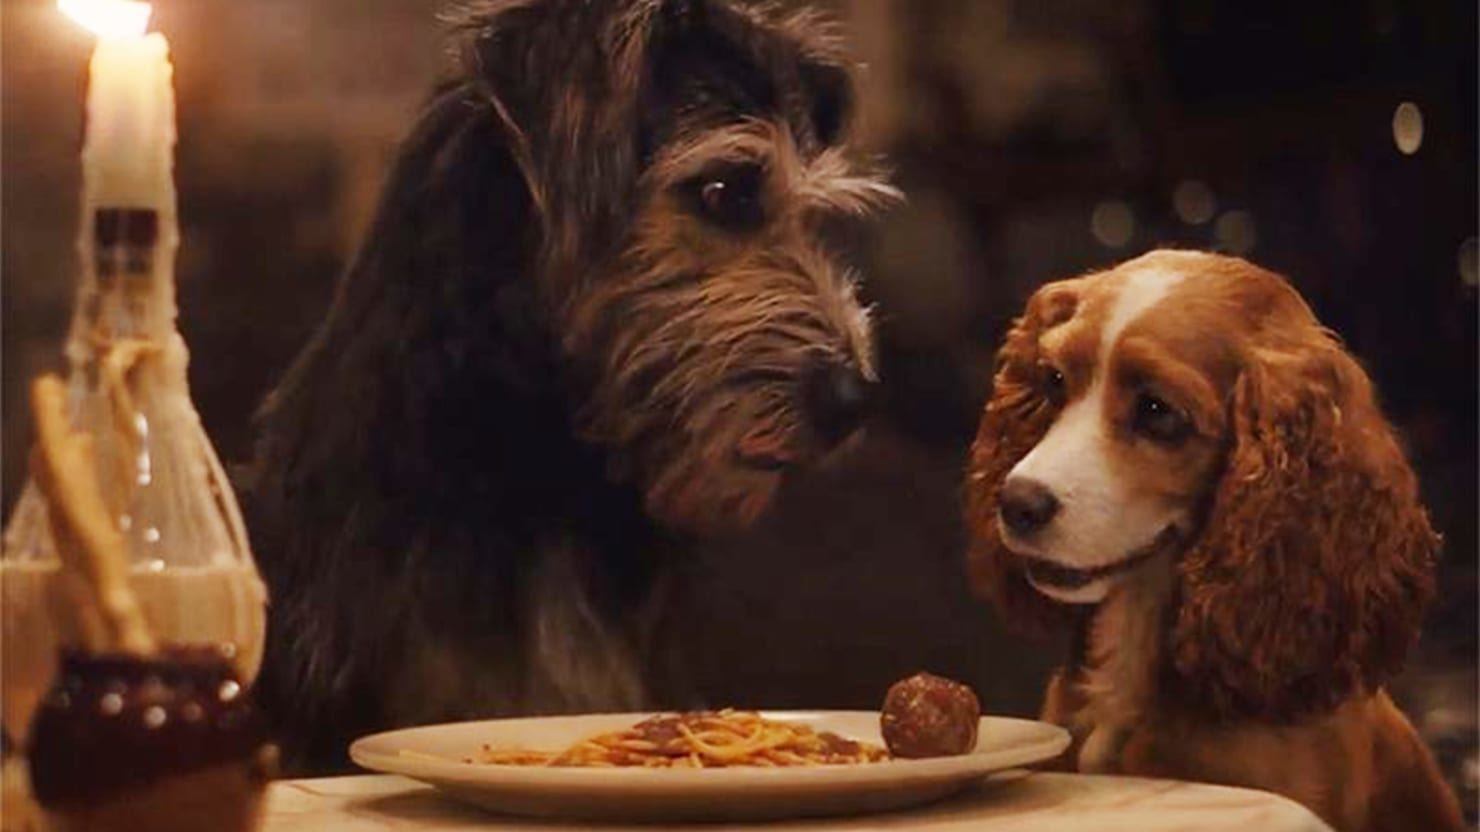 Disney Plus New Lady And The Tramp Remake Is As Weird As It Is Adorable